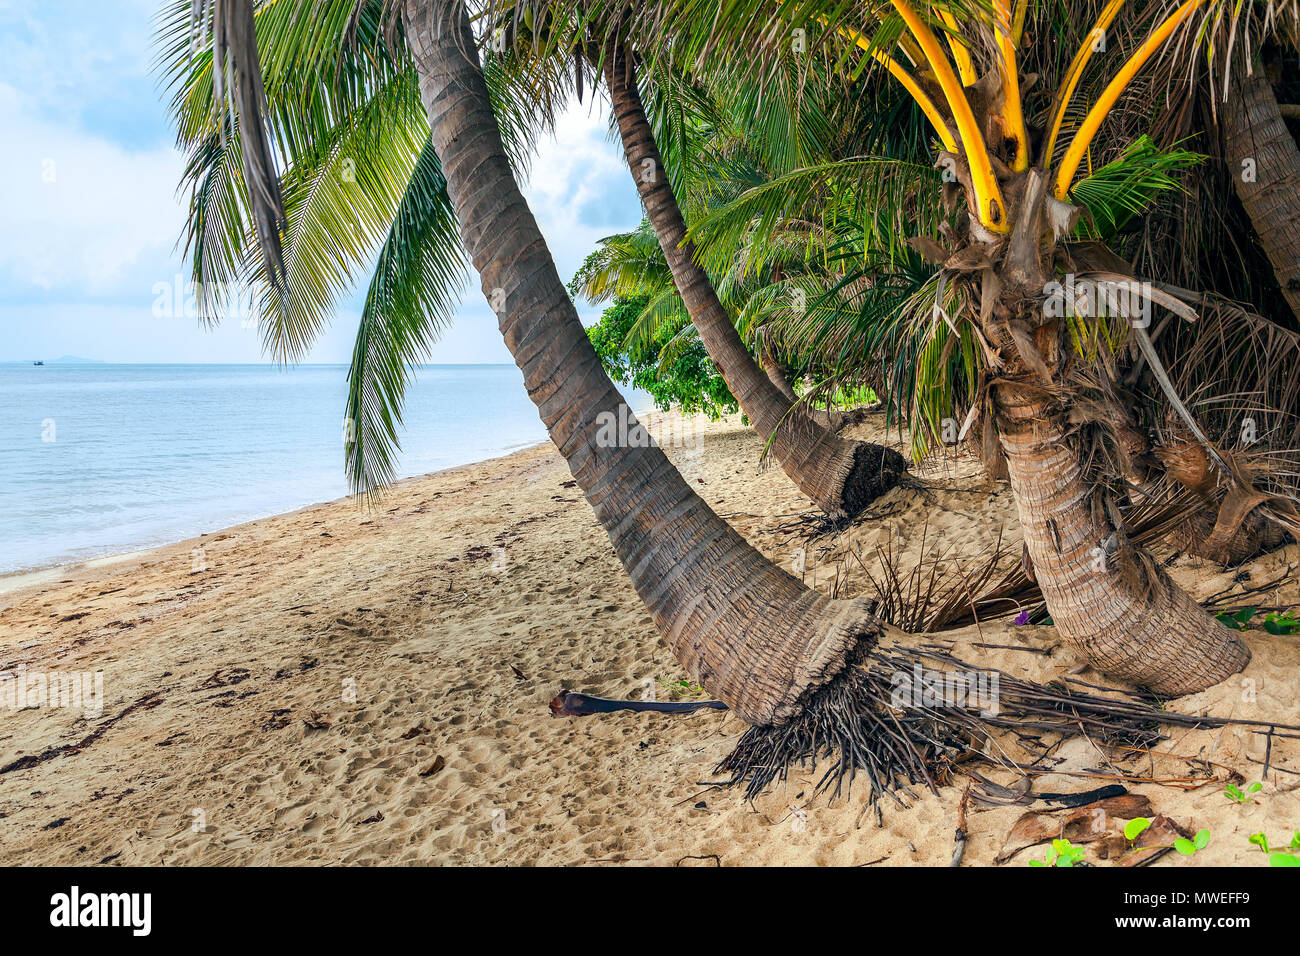 Coconut island of Koh Samui in Thailand. - Stock Image